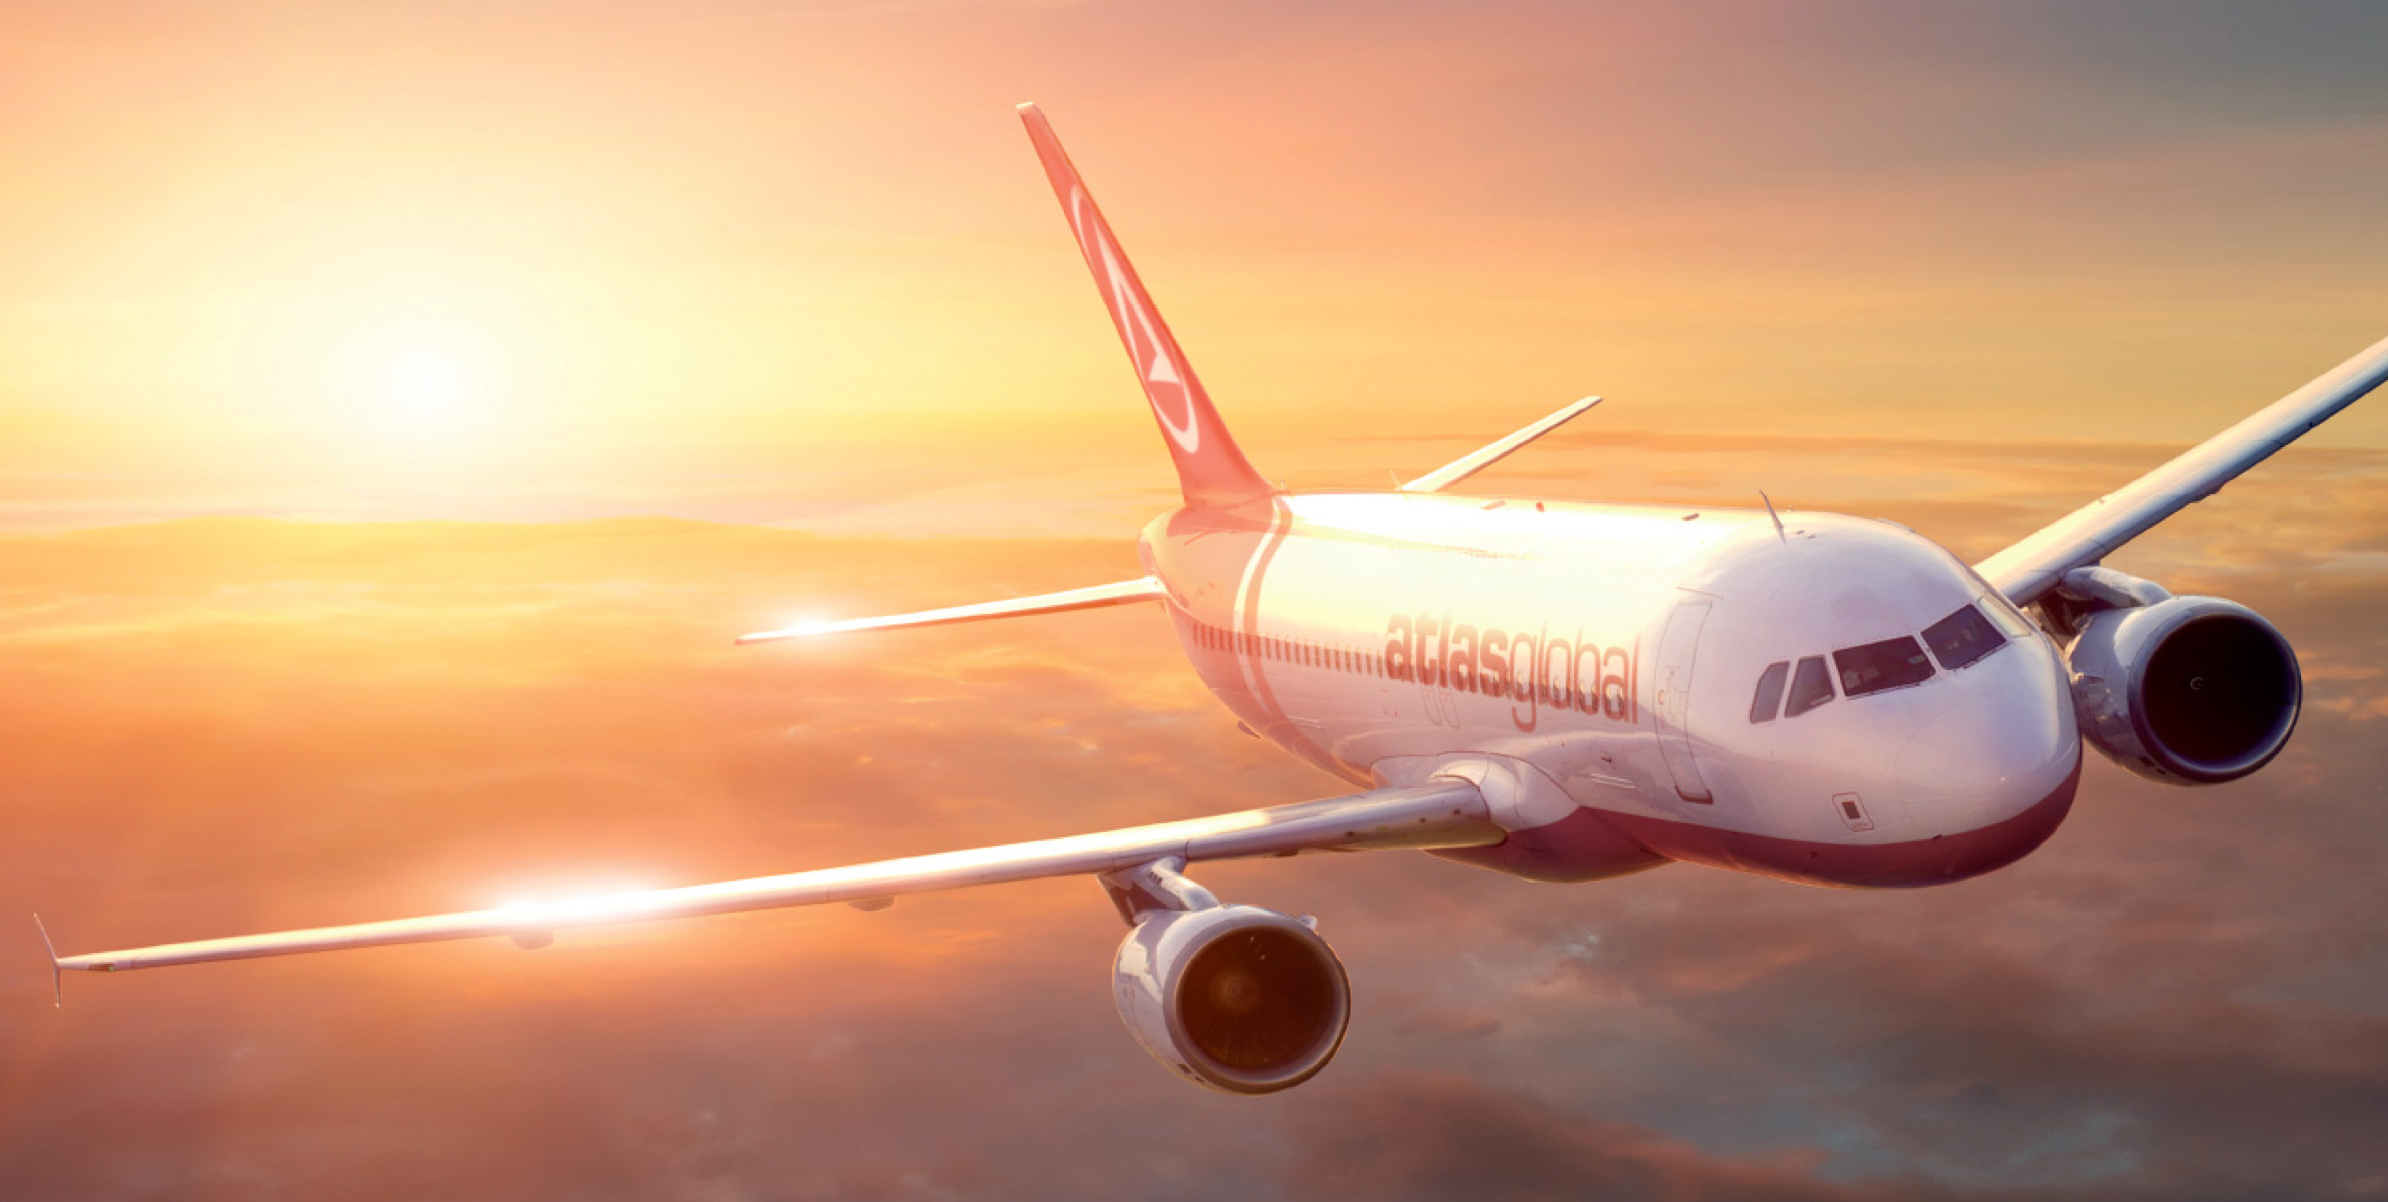 Atlasglobal_plane